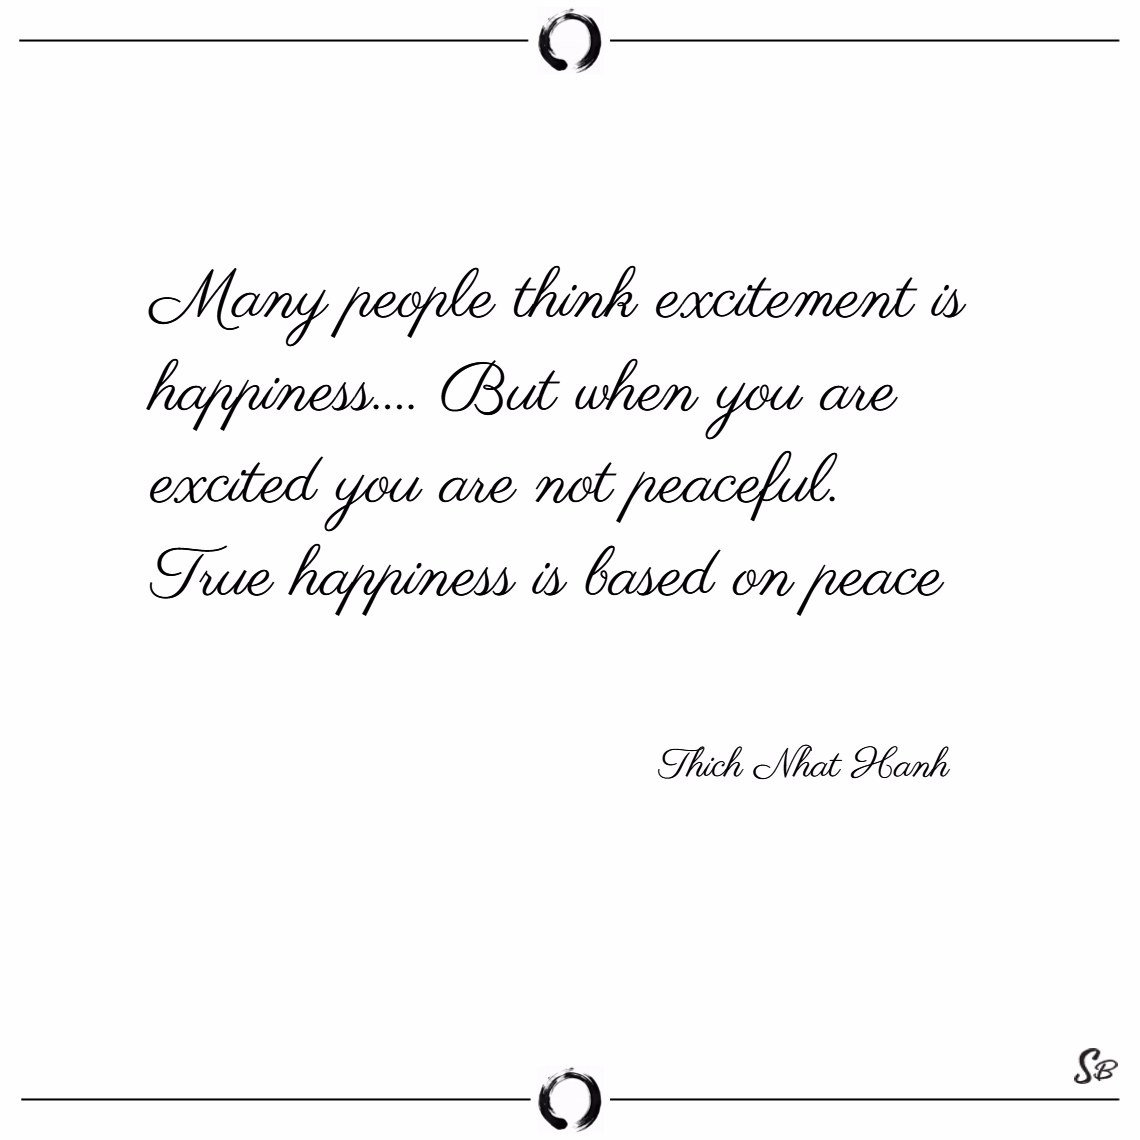 Many people think excitement is happiness.... but when you are excited you are not peaceful. true happiness is based on peace. – thich nhat hanh